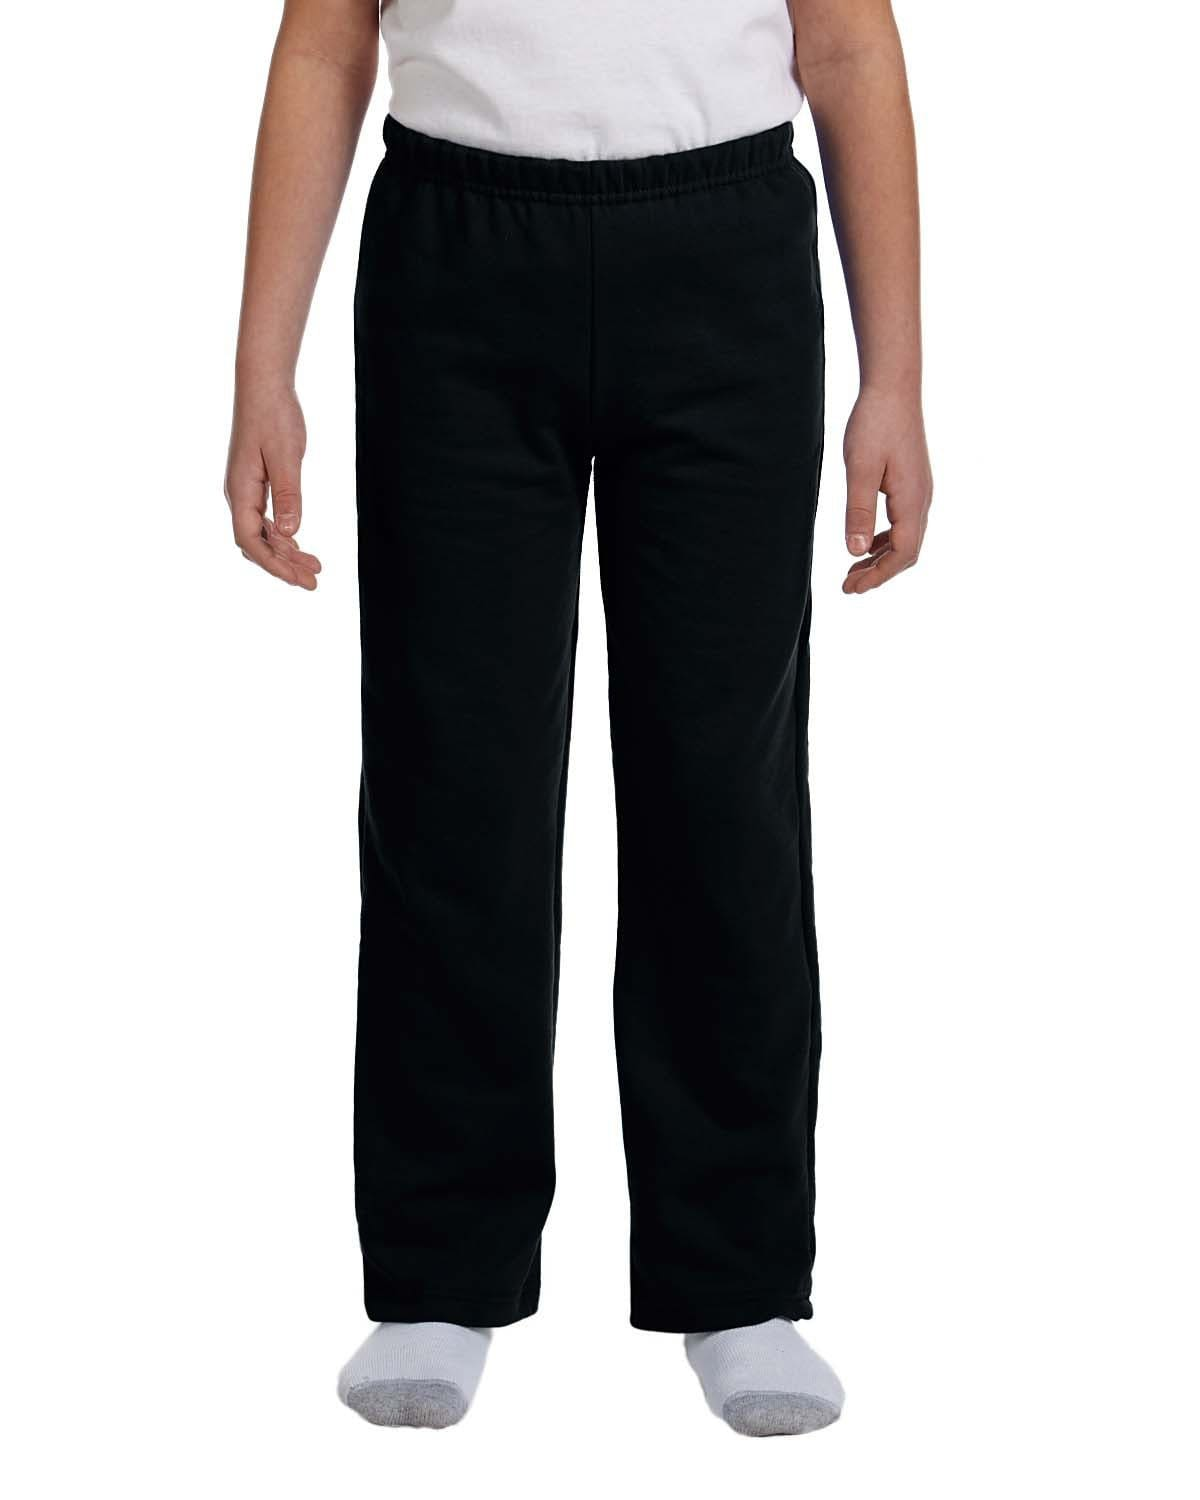 g184b-youth-heavy-blend-8-oz-50-50-open-bottom-sweatpants-Small-BLACK-Oasispromos